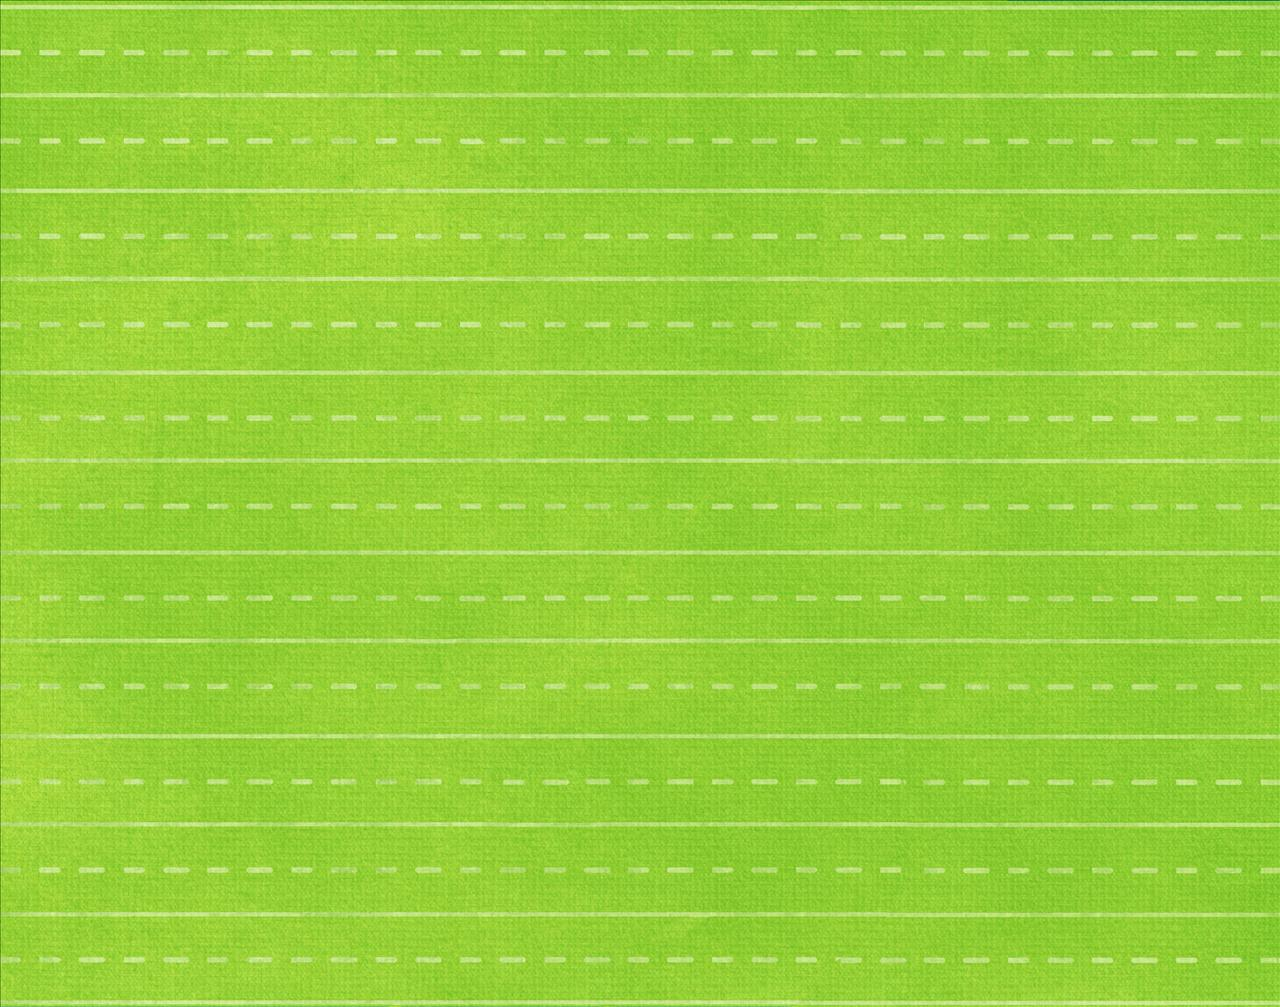 Green Runway Backgrounds